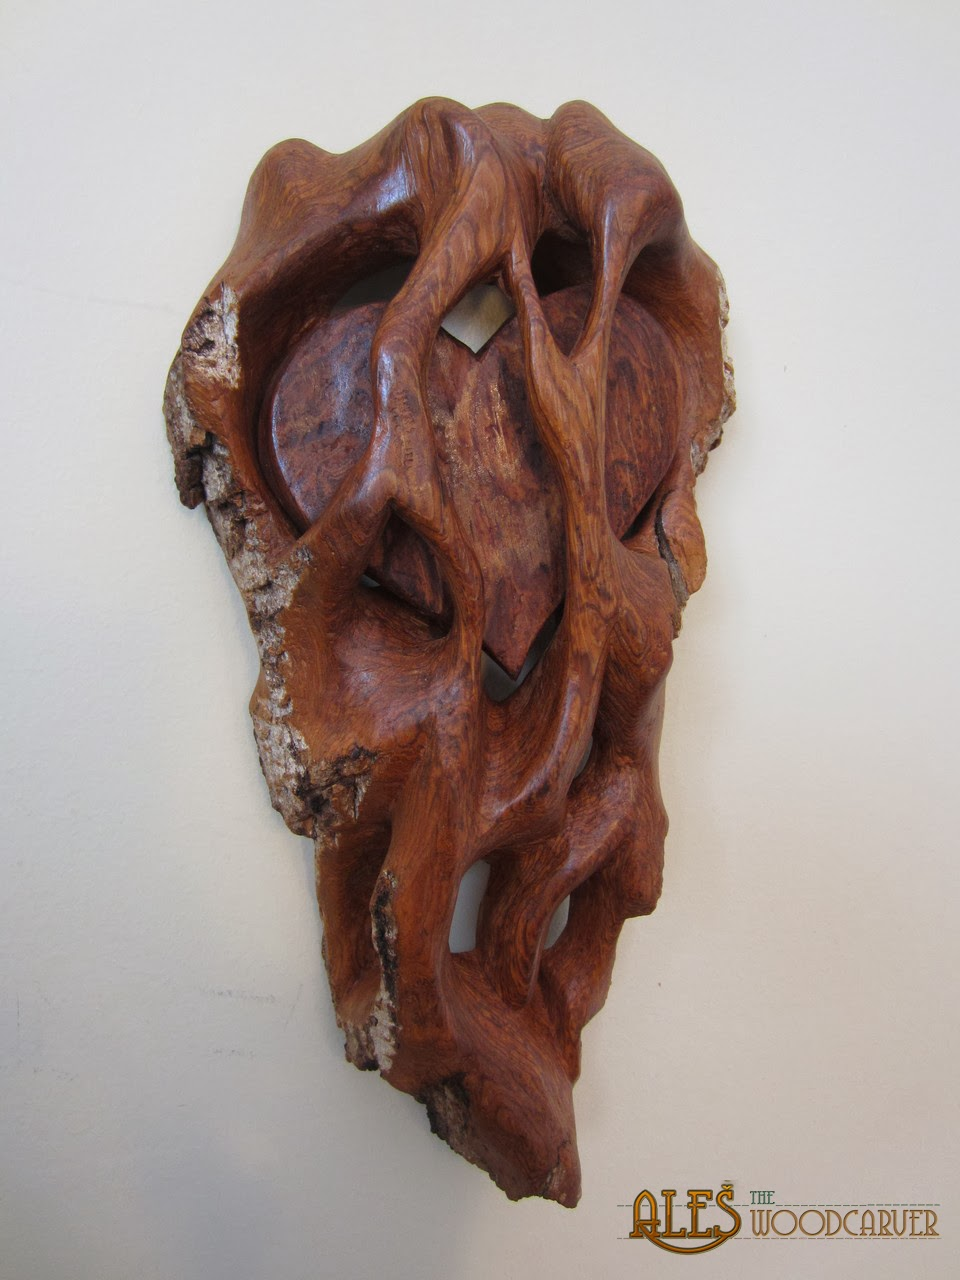 Ales the woodcarver heart within